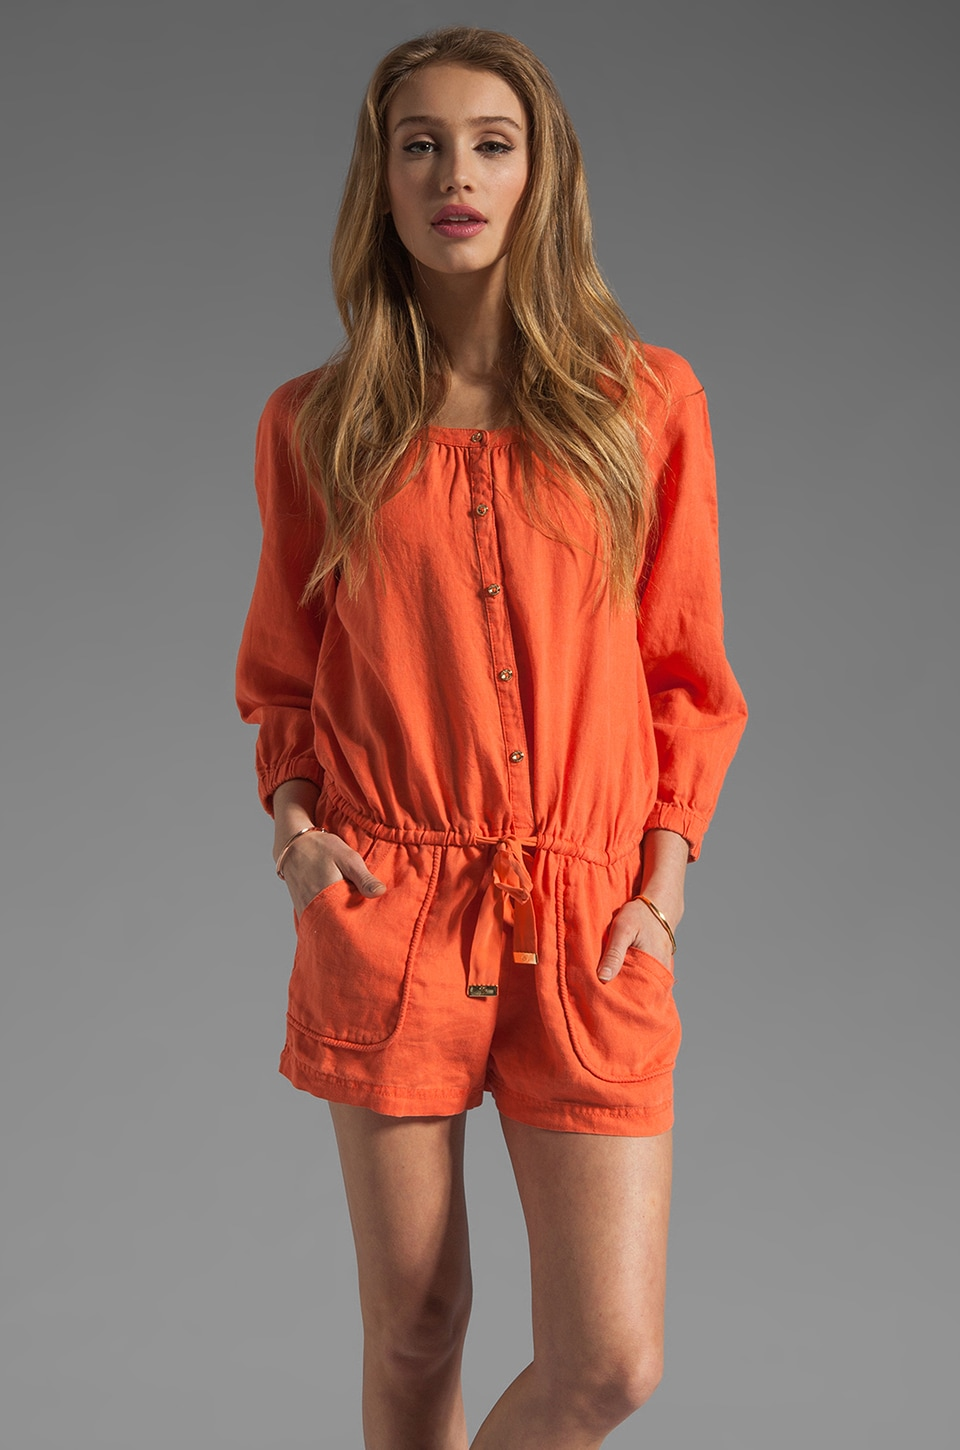 Juicy Couture Beach Linen Romper in Coral Gloss